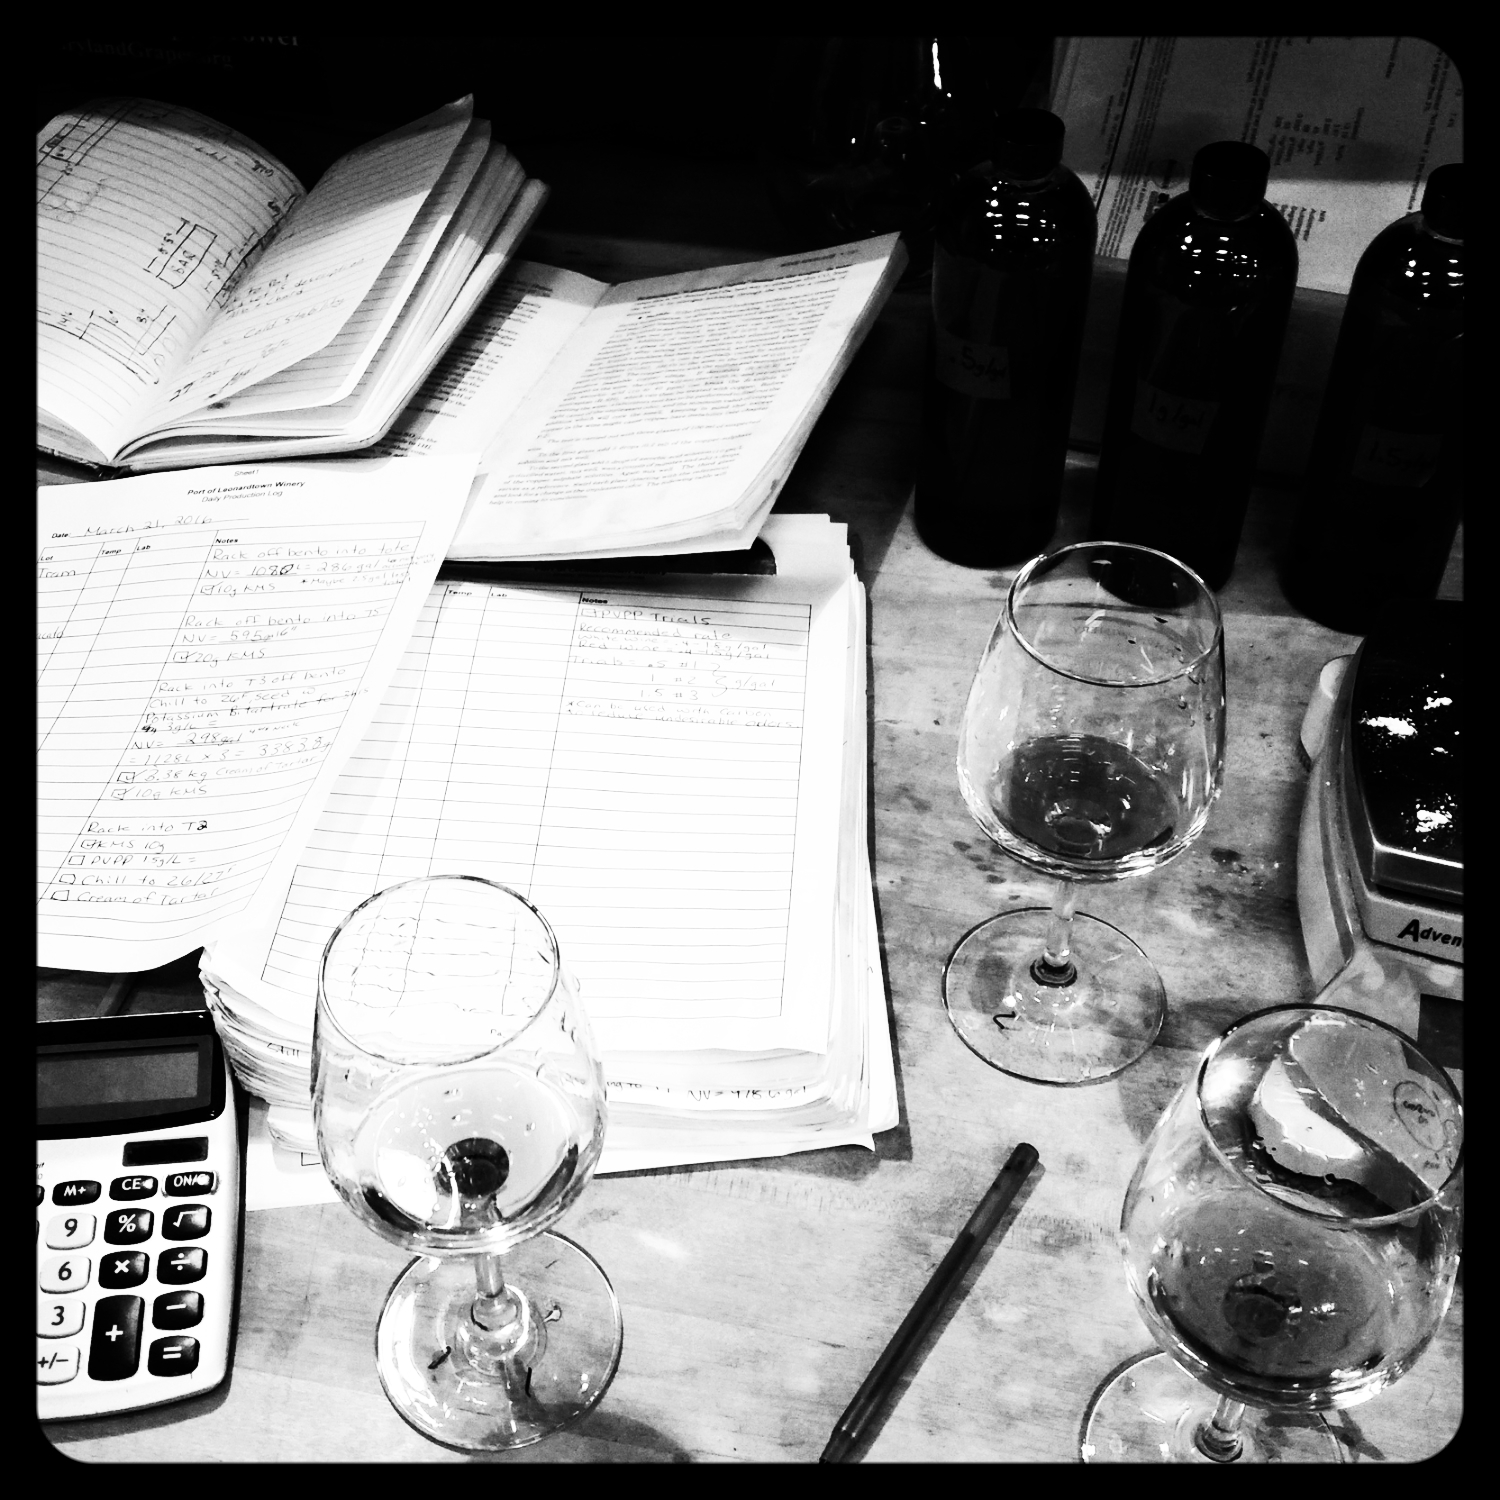 Winemaker's desk